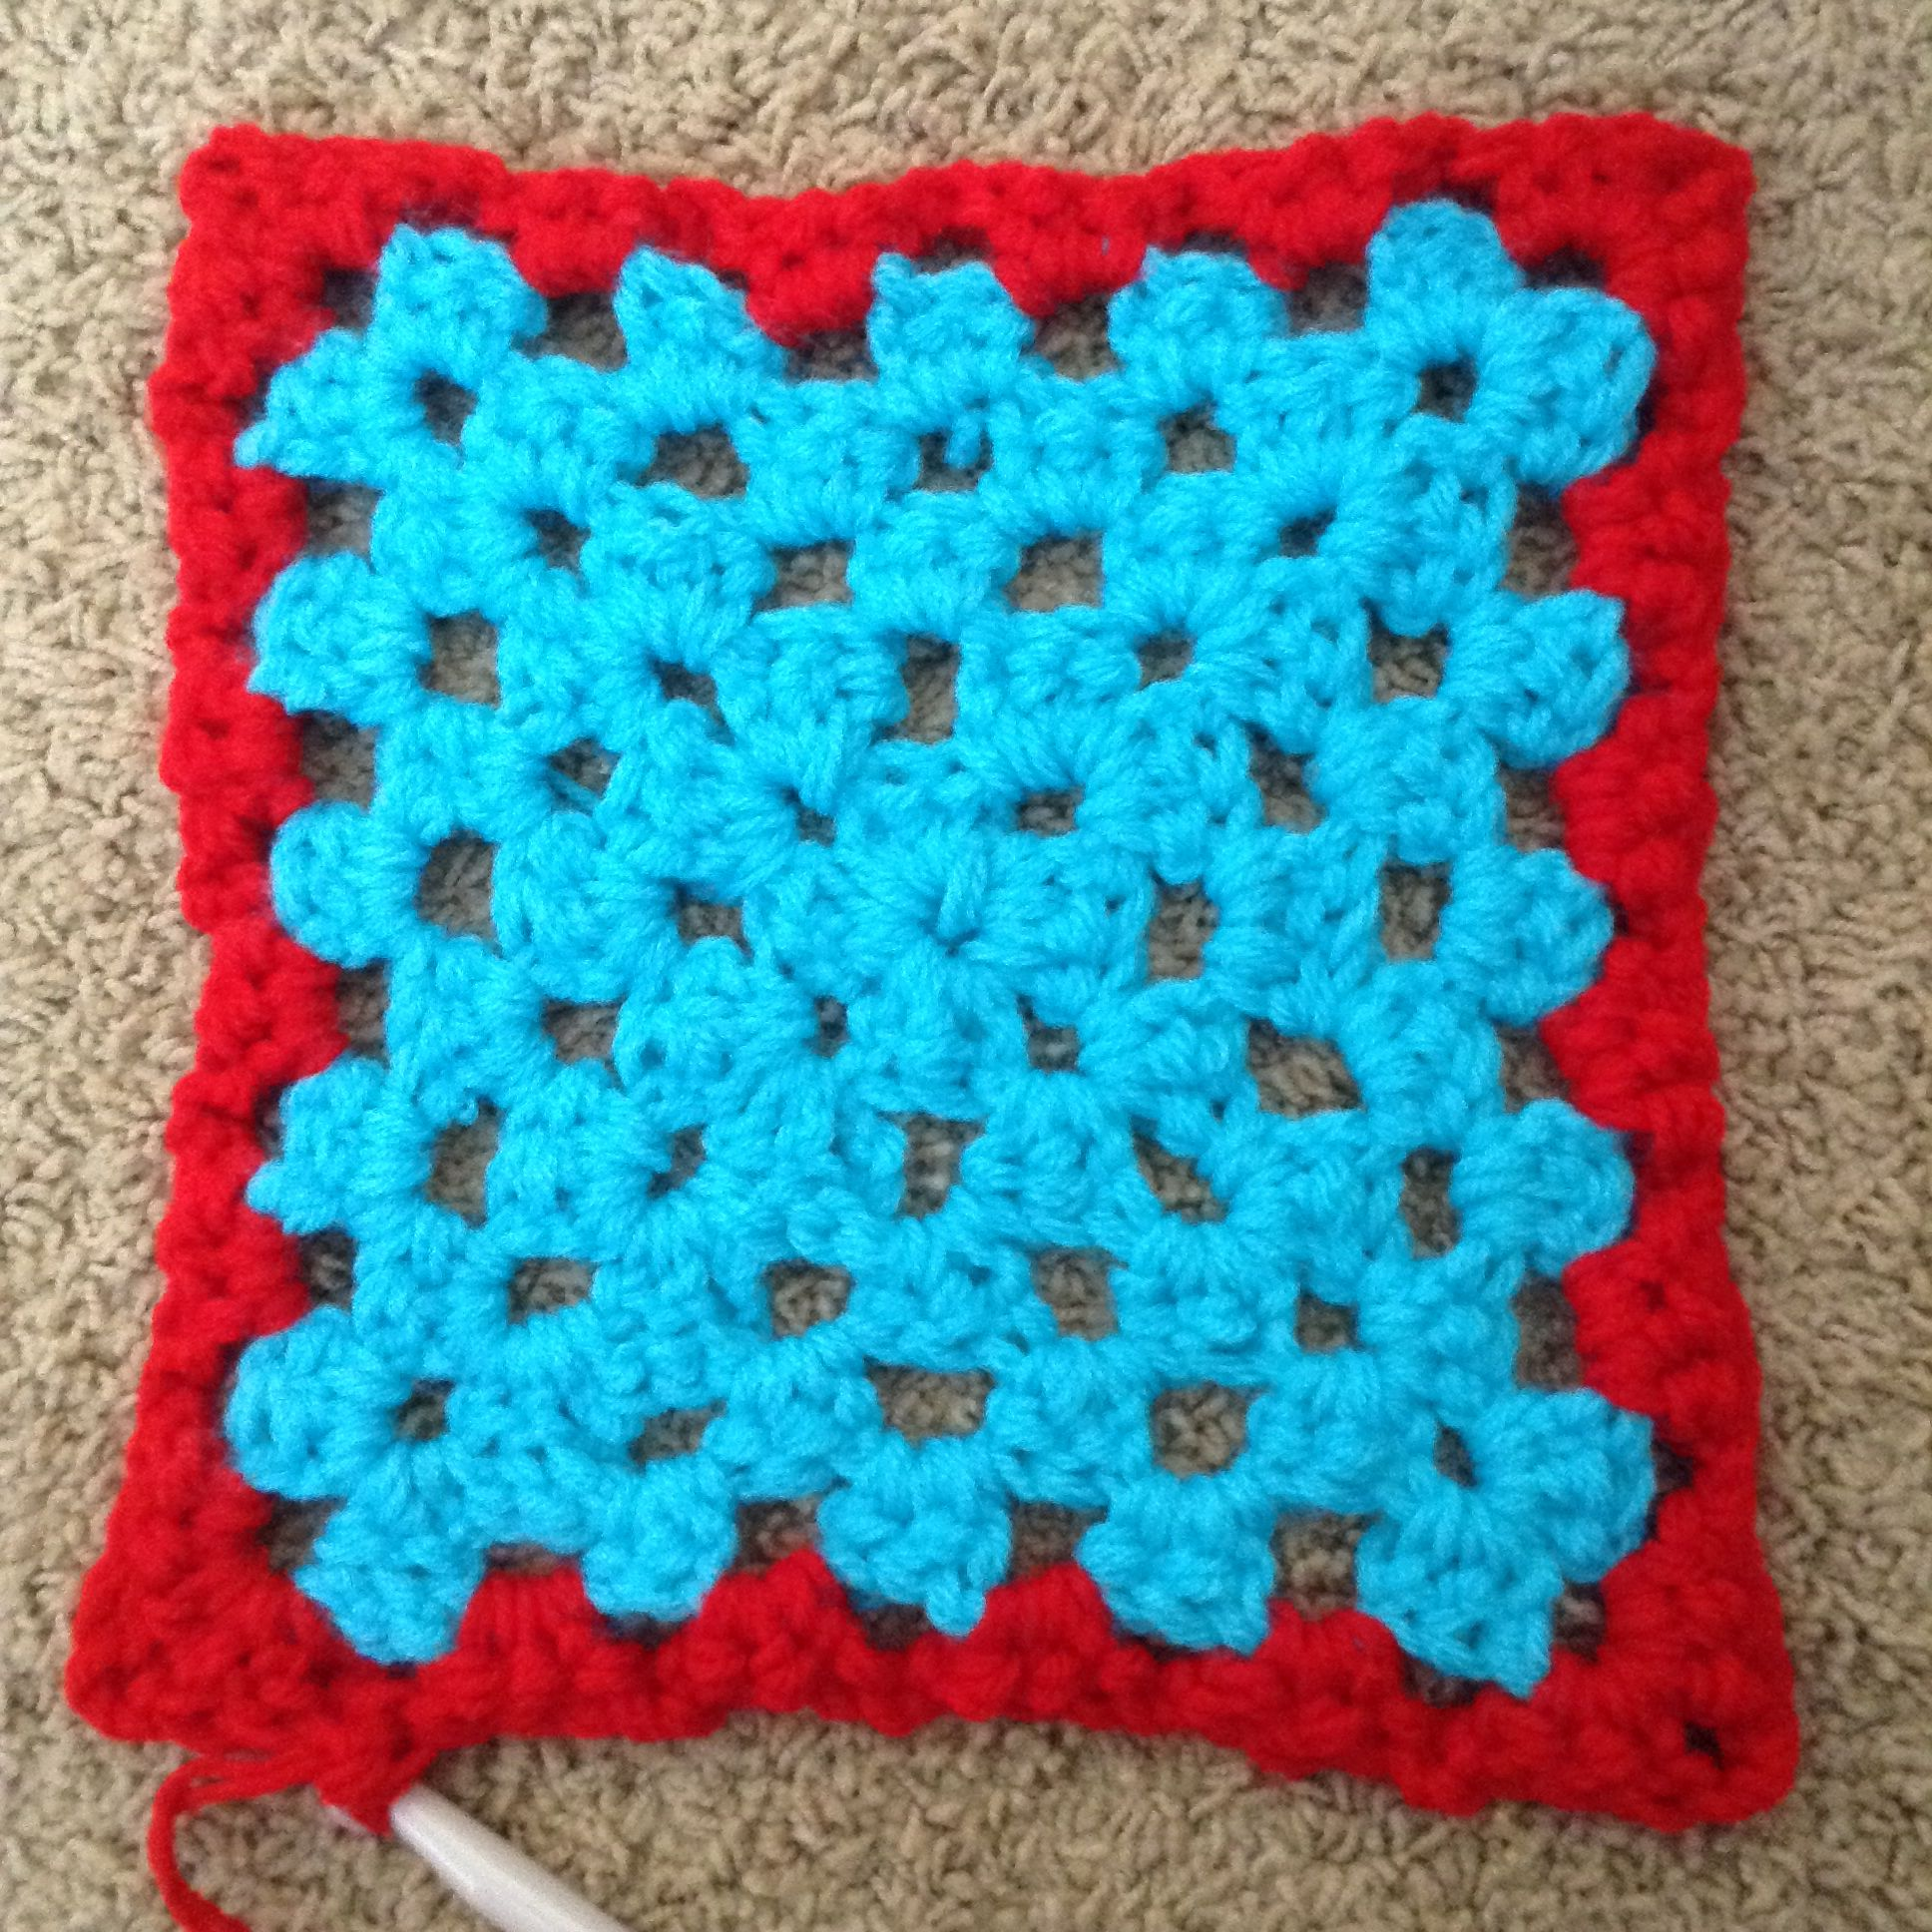 Crocheted granny square.